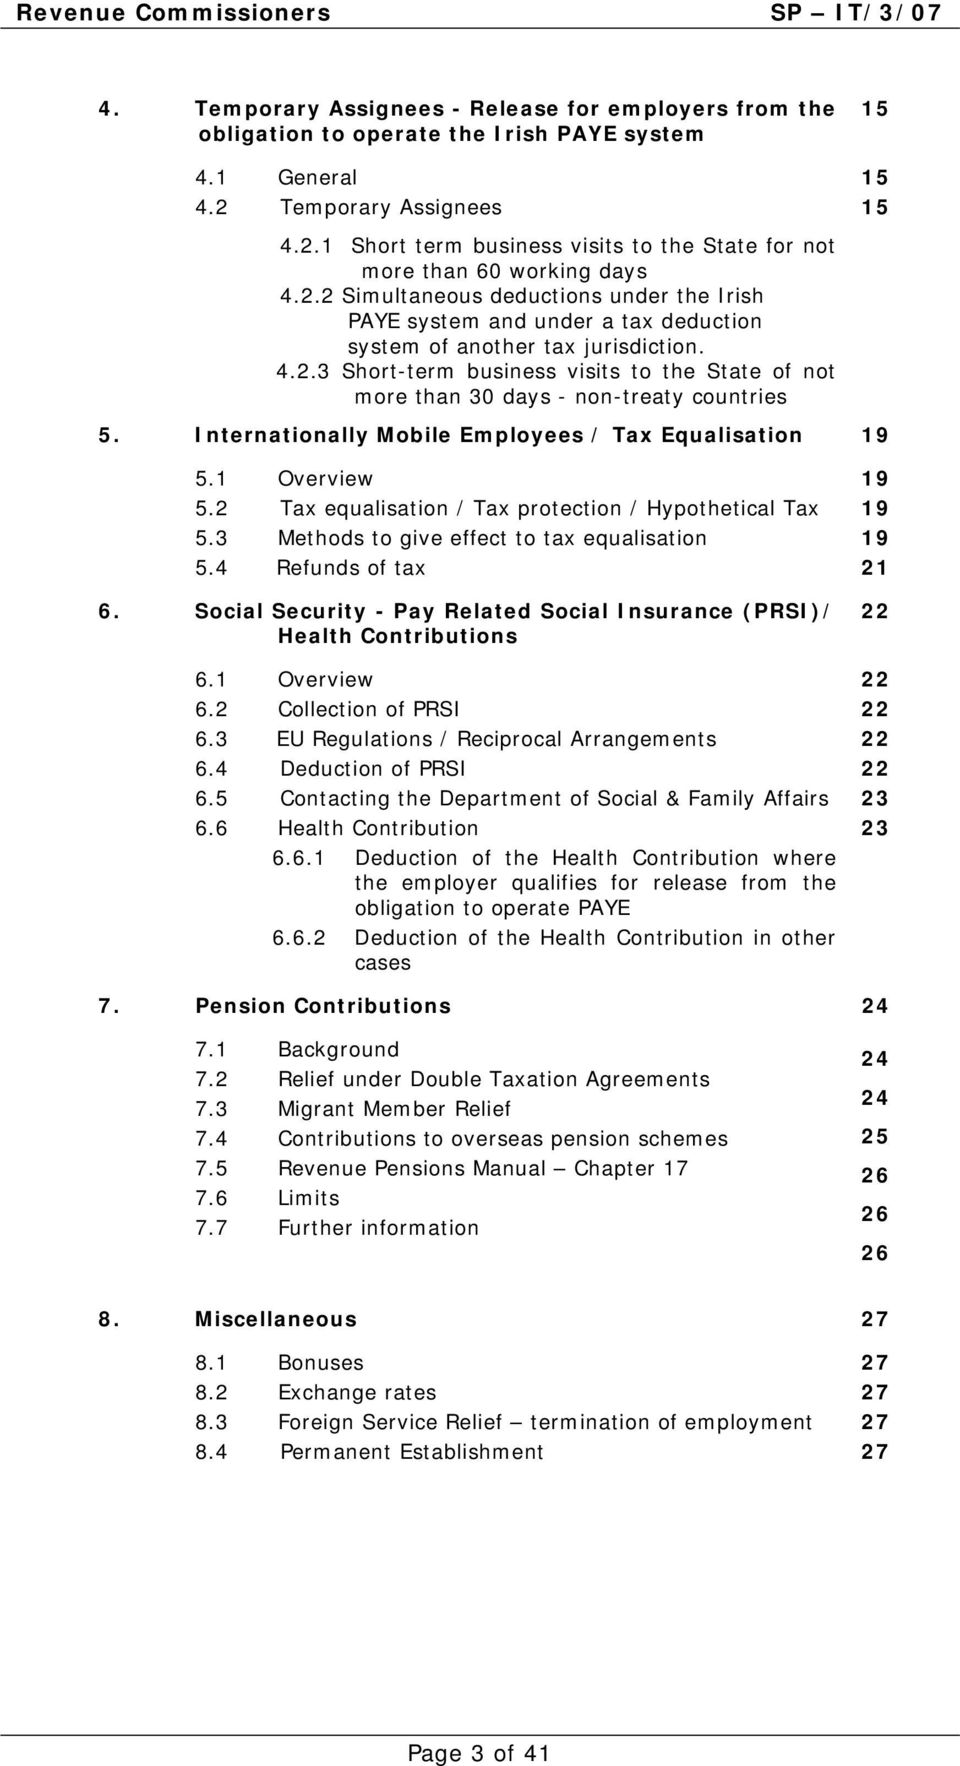 Internationally Mobile Employees / Tax Equalisation 19 15 15 5.1 Overview 5.2 Tax equalisation / Tax protection / Hypothetical Tax 5.3 Methods to give effect to tax equalisation 5.4 Refunds of tax 6.